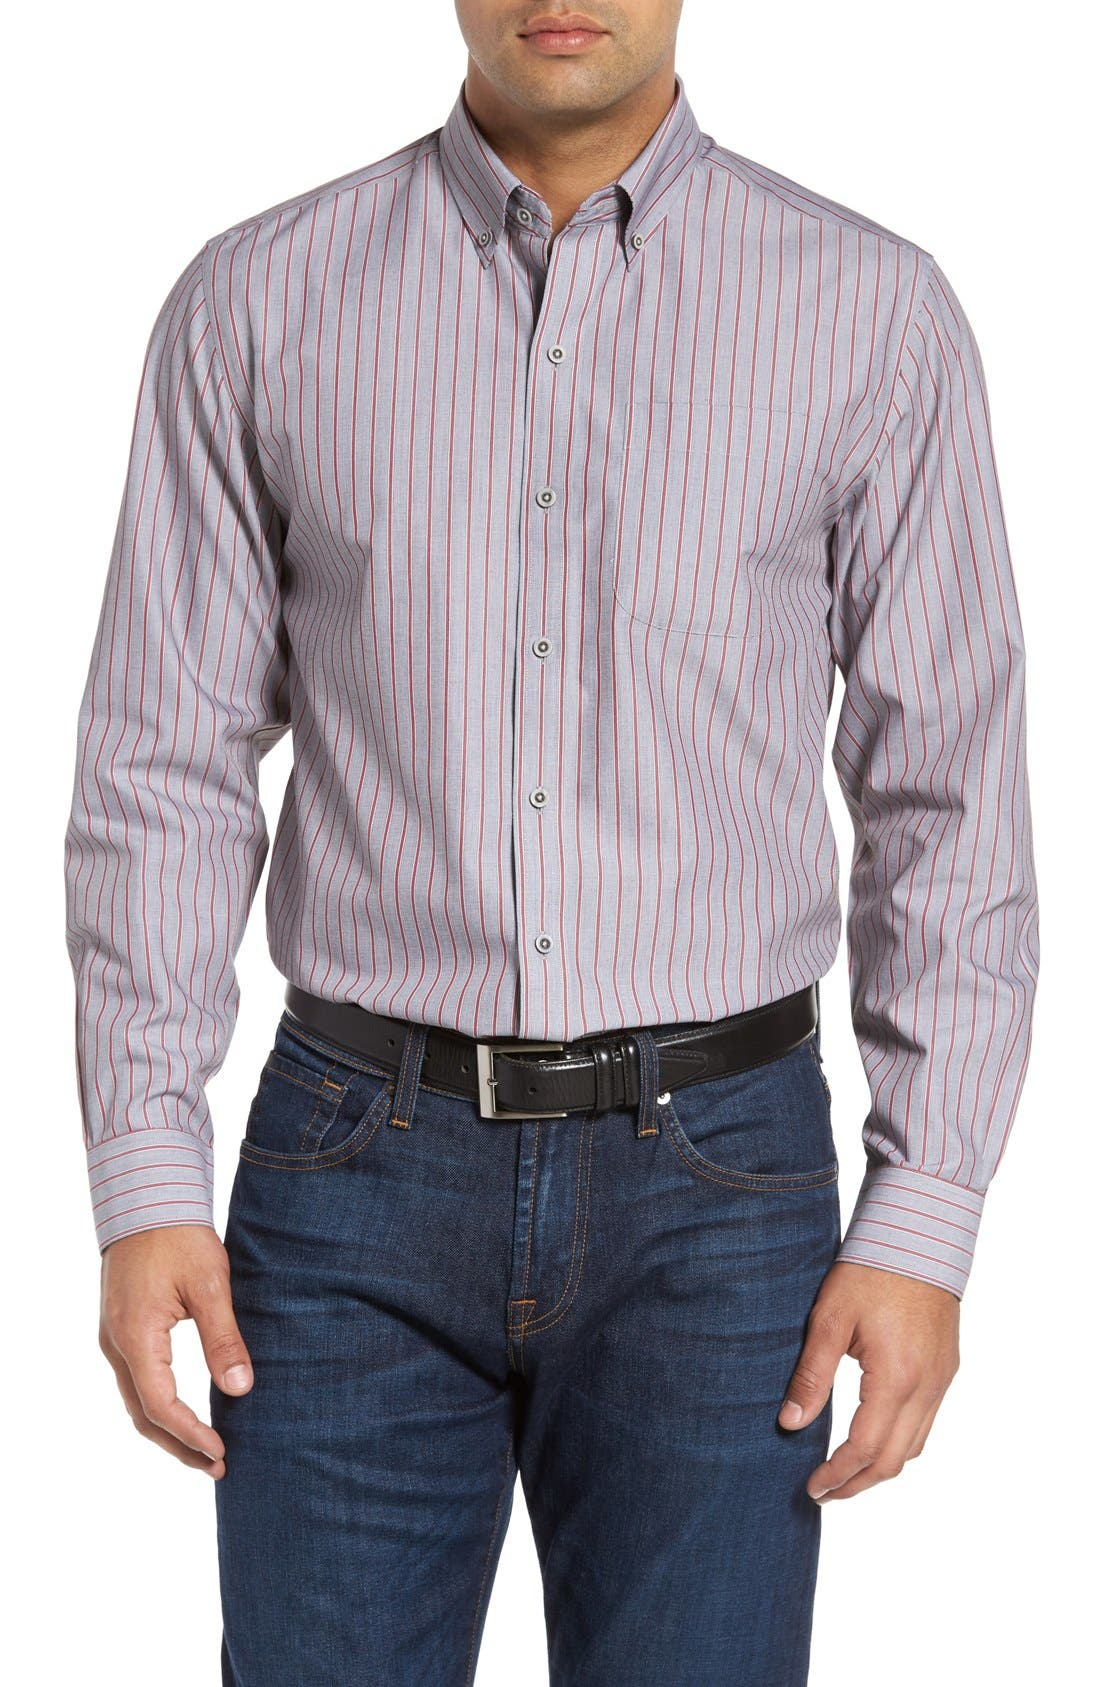 Cutter & Buck 'Peak' Classic Fit Wrinkle Free Stripe Sport Shirt